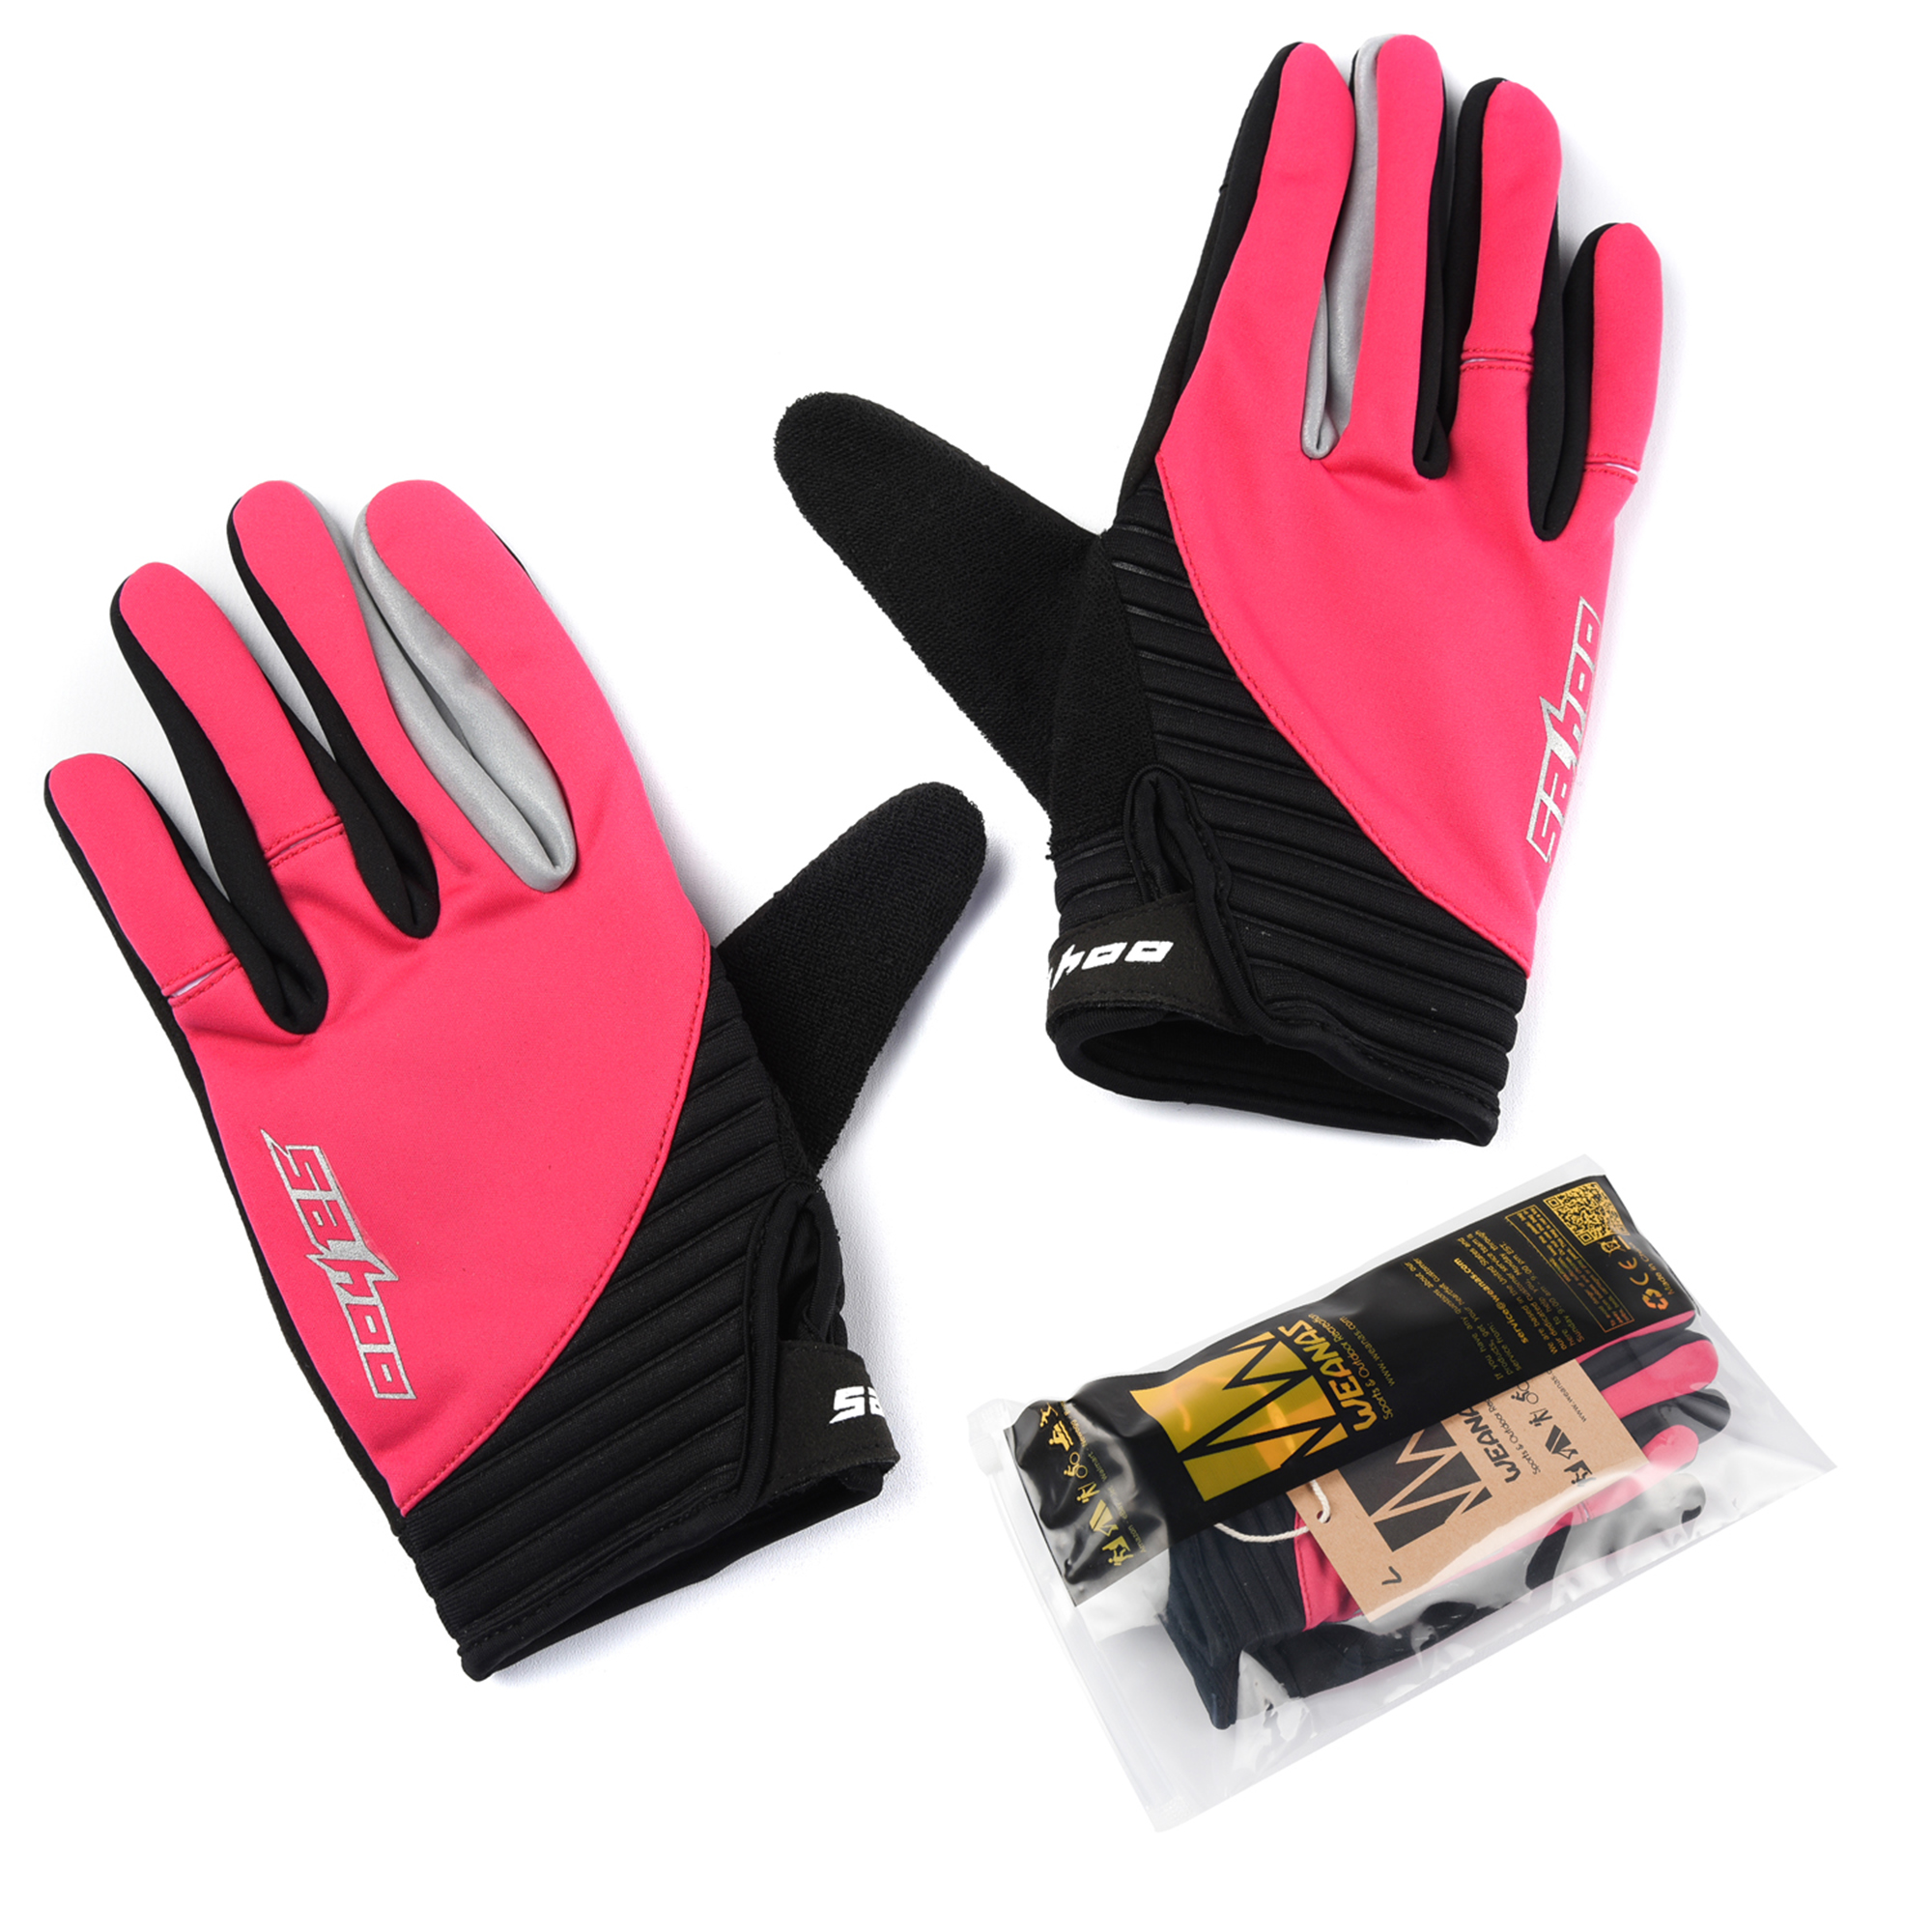 WEANAS Women's Outdoor Gel Touchscreen Full Finger Cycling Gloves, Winter Cold Weather Bike Bicycle MTB DH Downhill Off... by Weanas